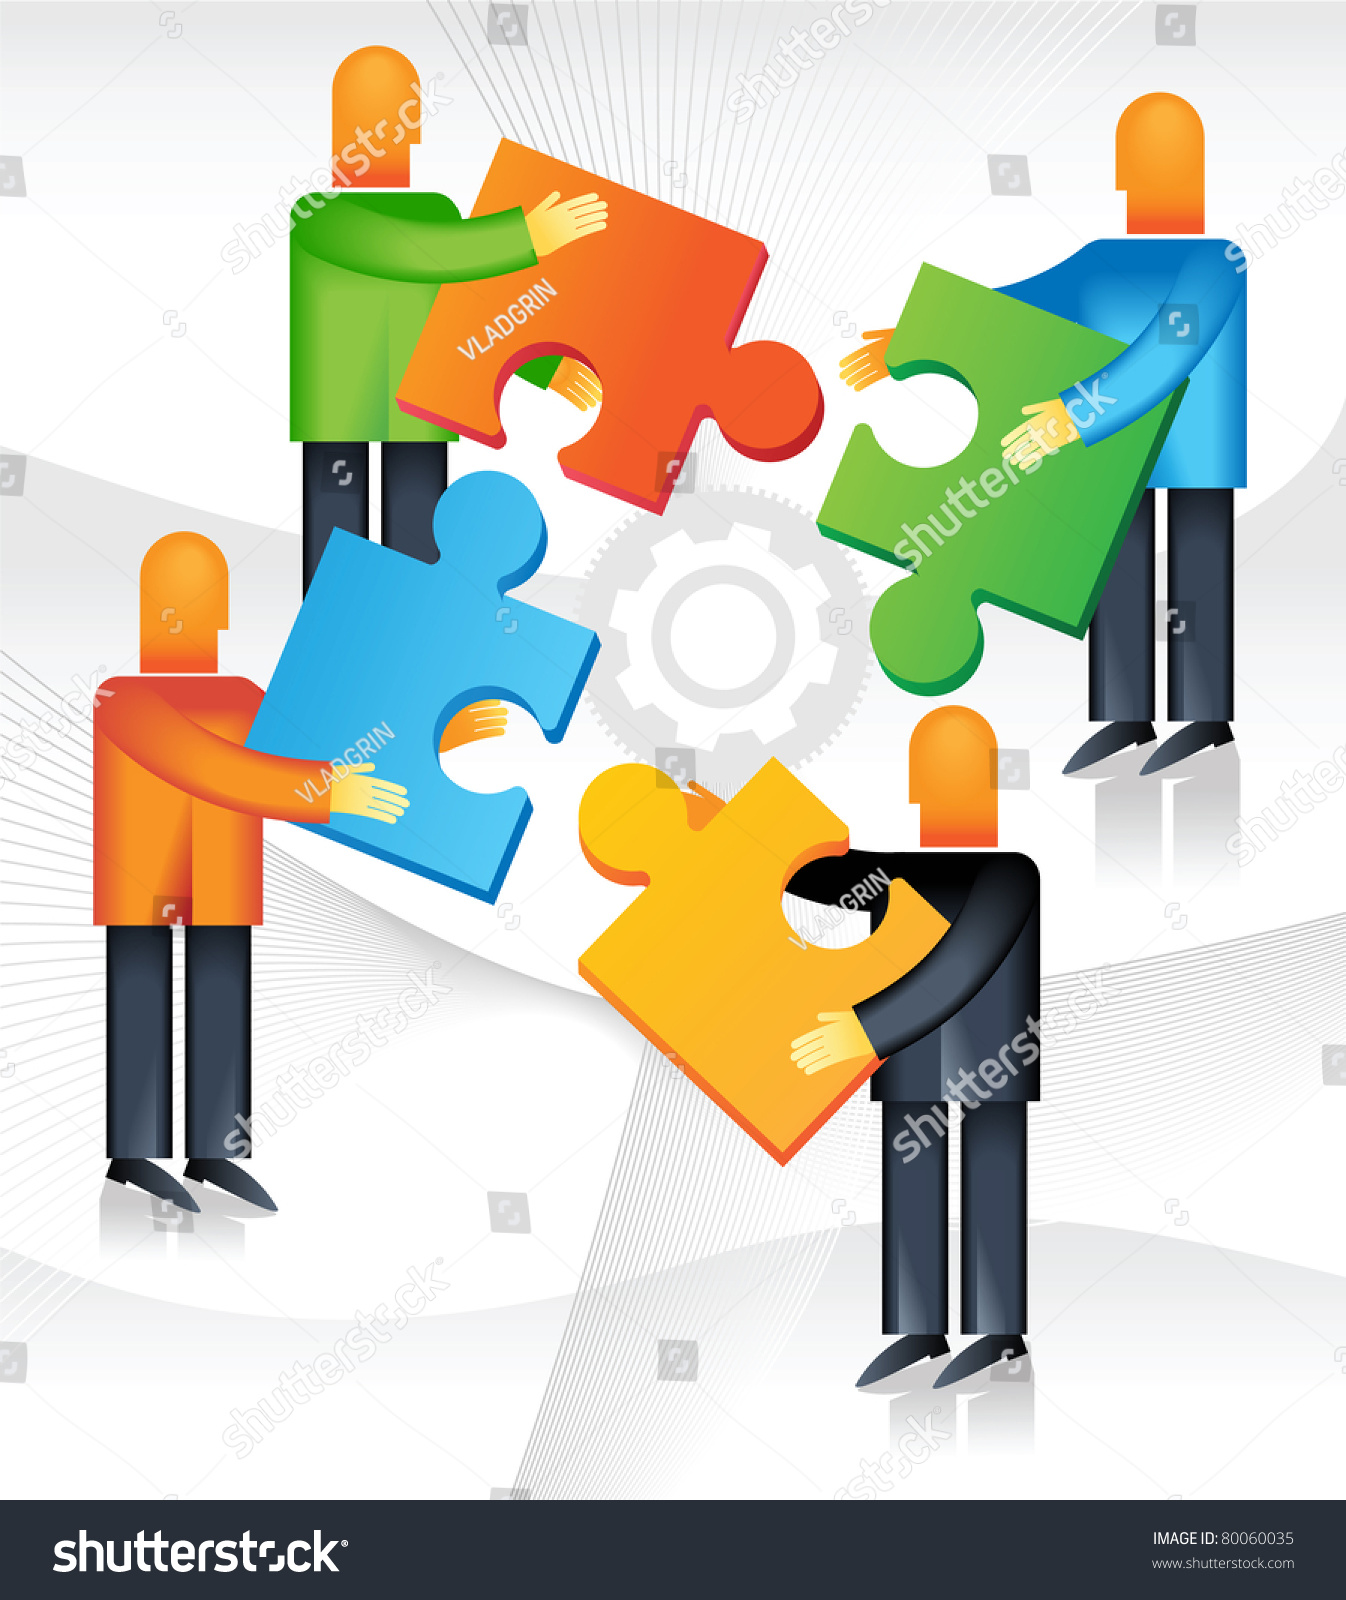 Men Joining Together To Form One Team In One Direction.To Achieve One Goal Stock Vector Illustration 80060035 : Shutterstock